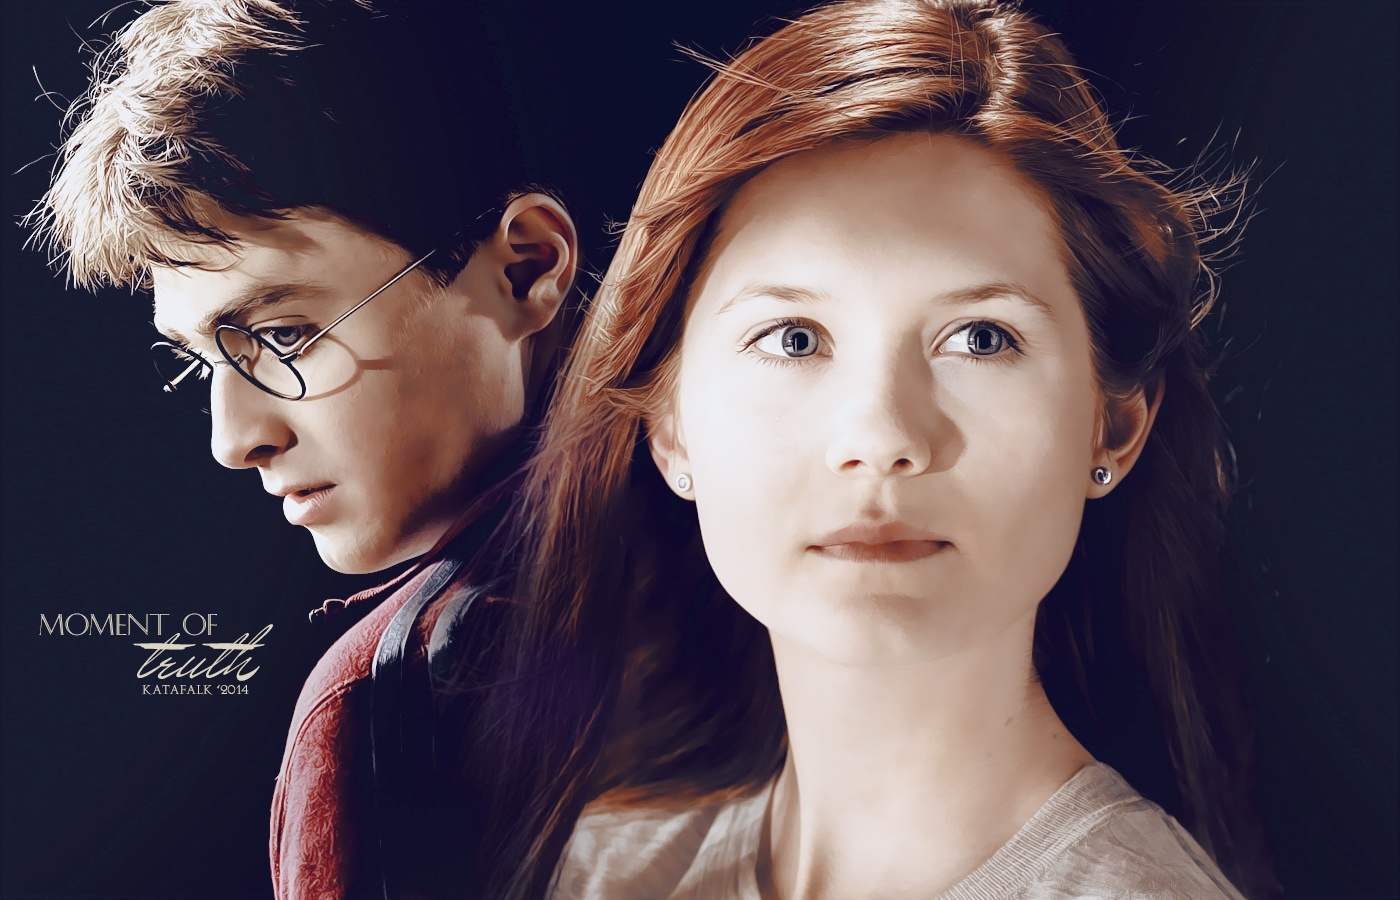 Ginny weasley sex vidoes adult picture